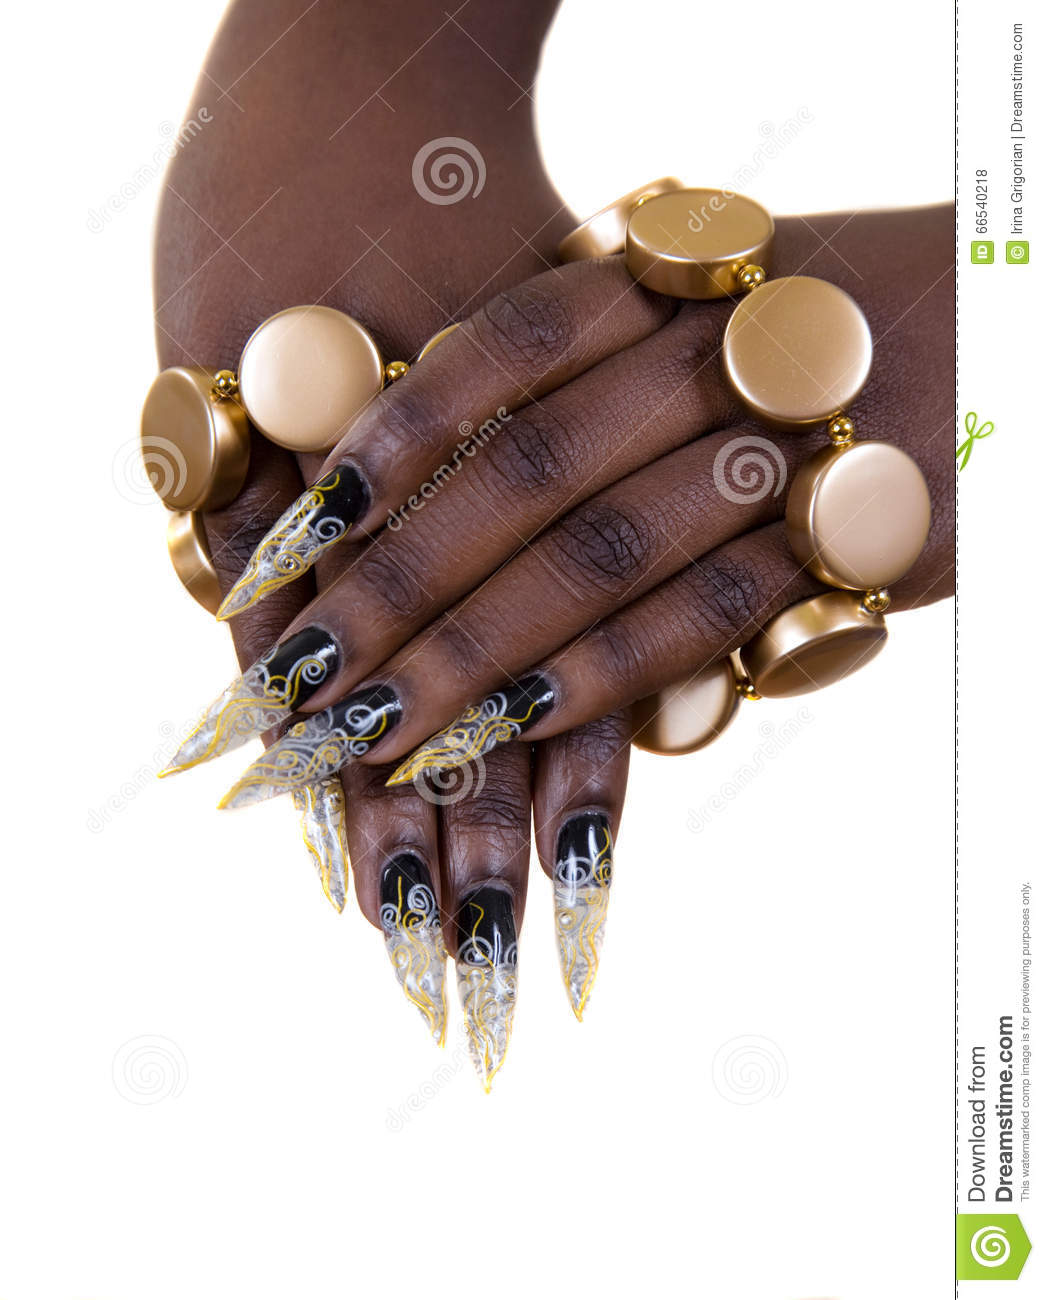 Nail Design Manicure Stock Photo Image Of Isolated Metal 66540218